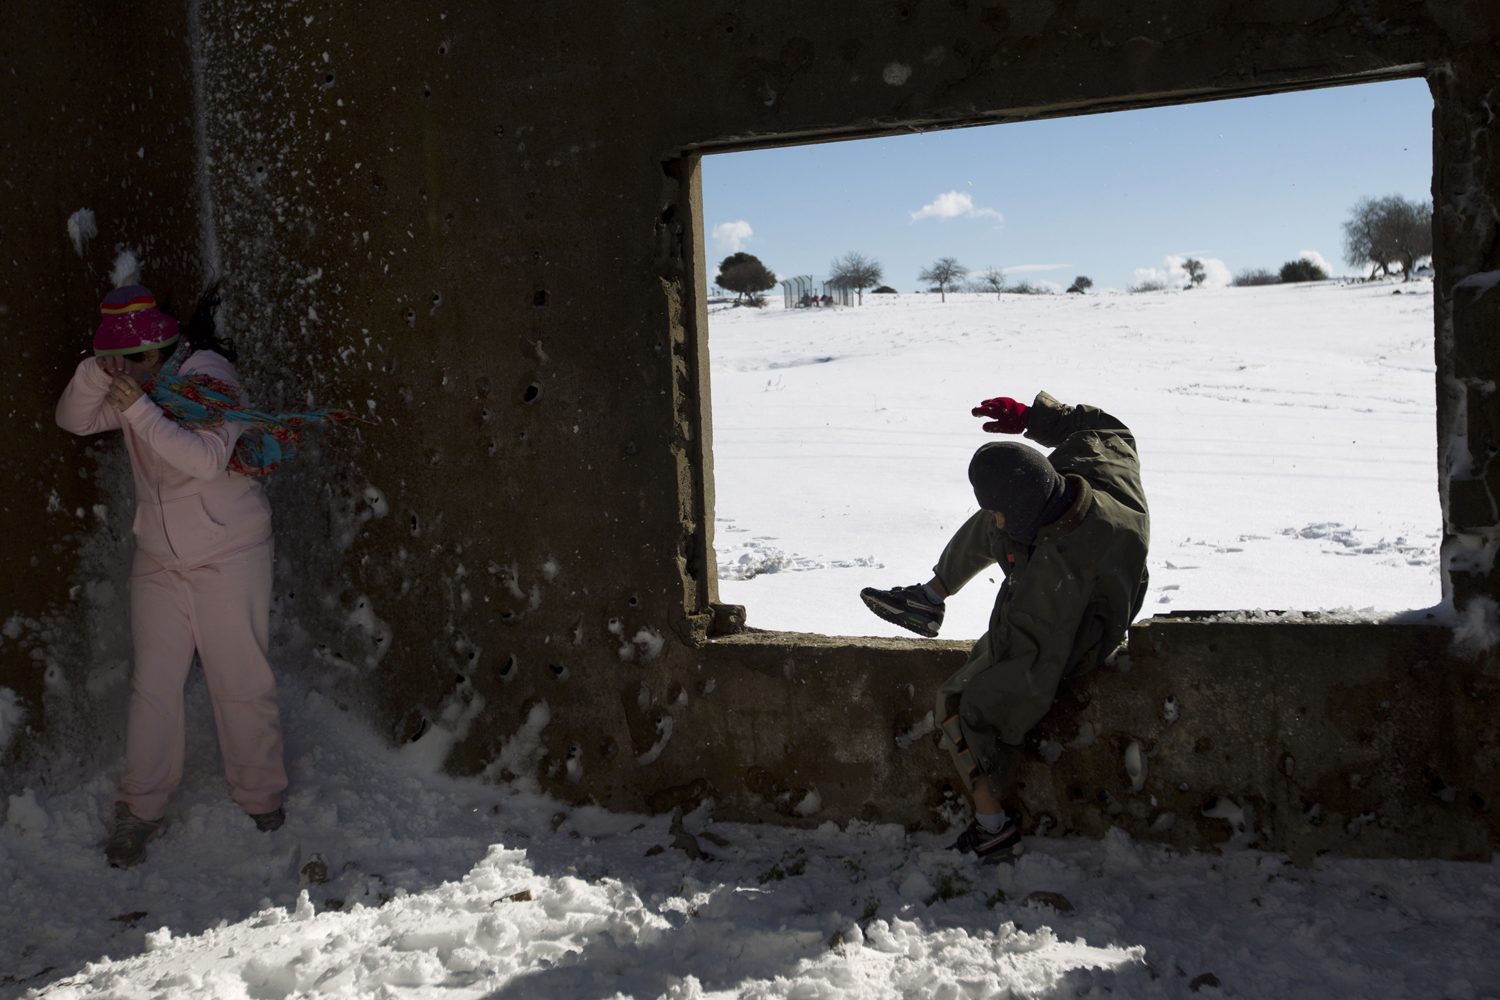 Jan. 10, 2013. Children play in an abandoned building at a snow covered field in the Golan Heights on the border with Syria.